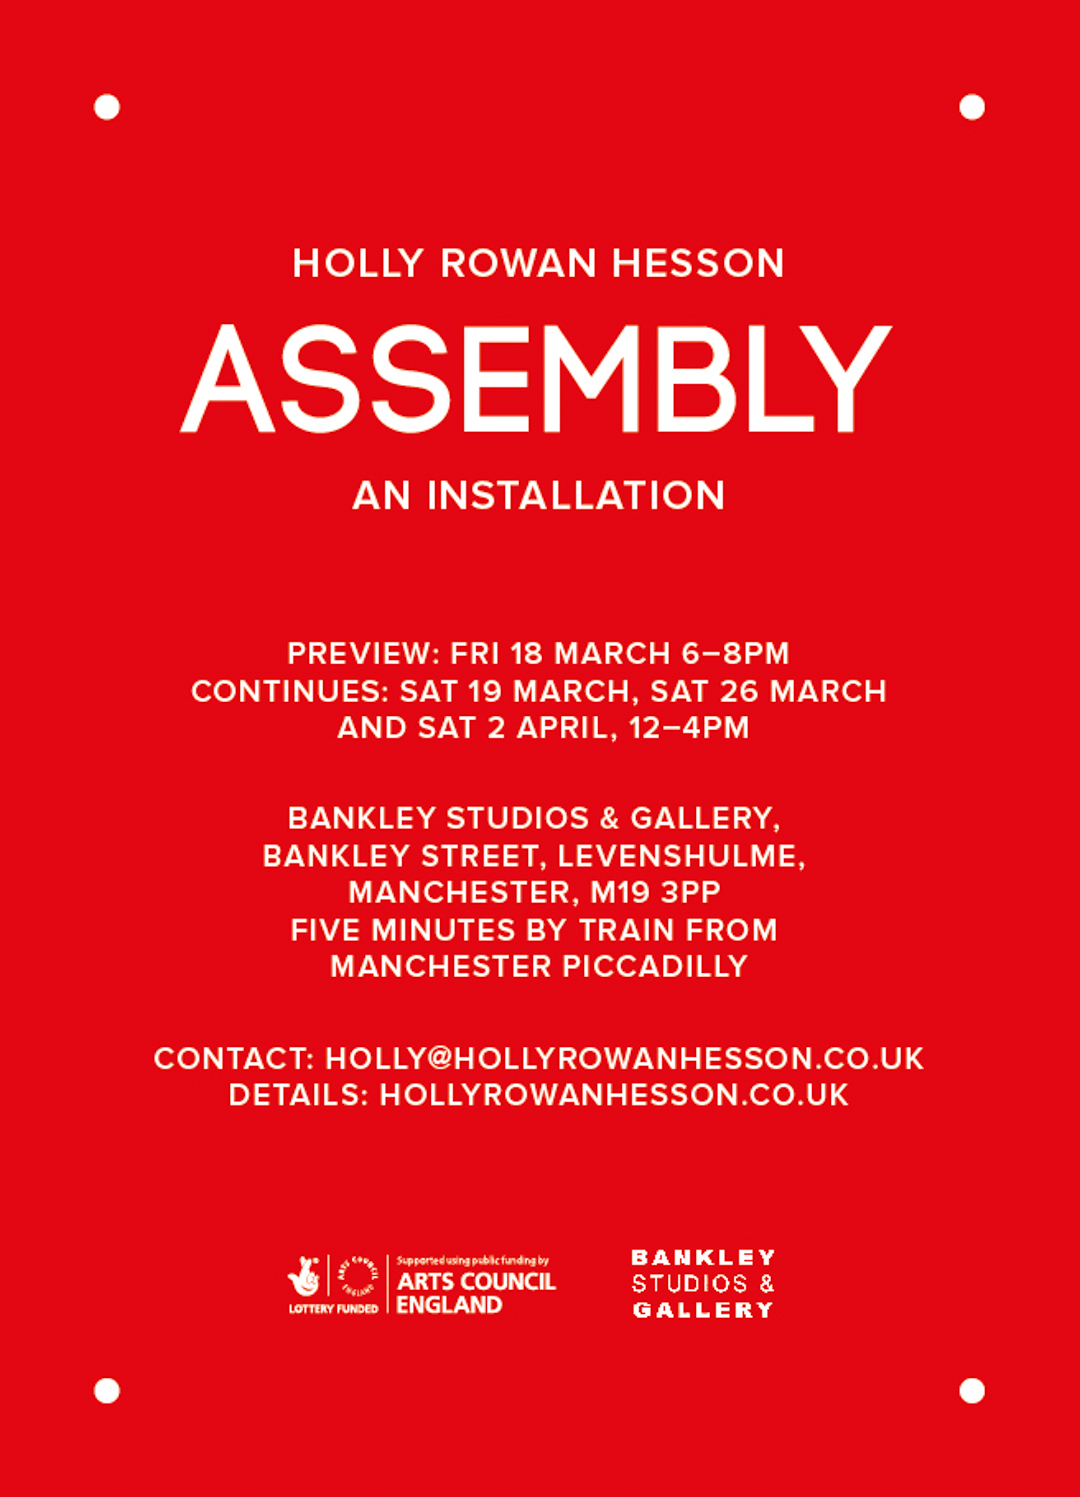 Assembly poster designed by Michael Thorp